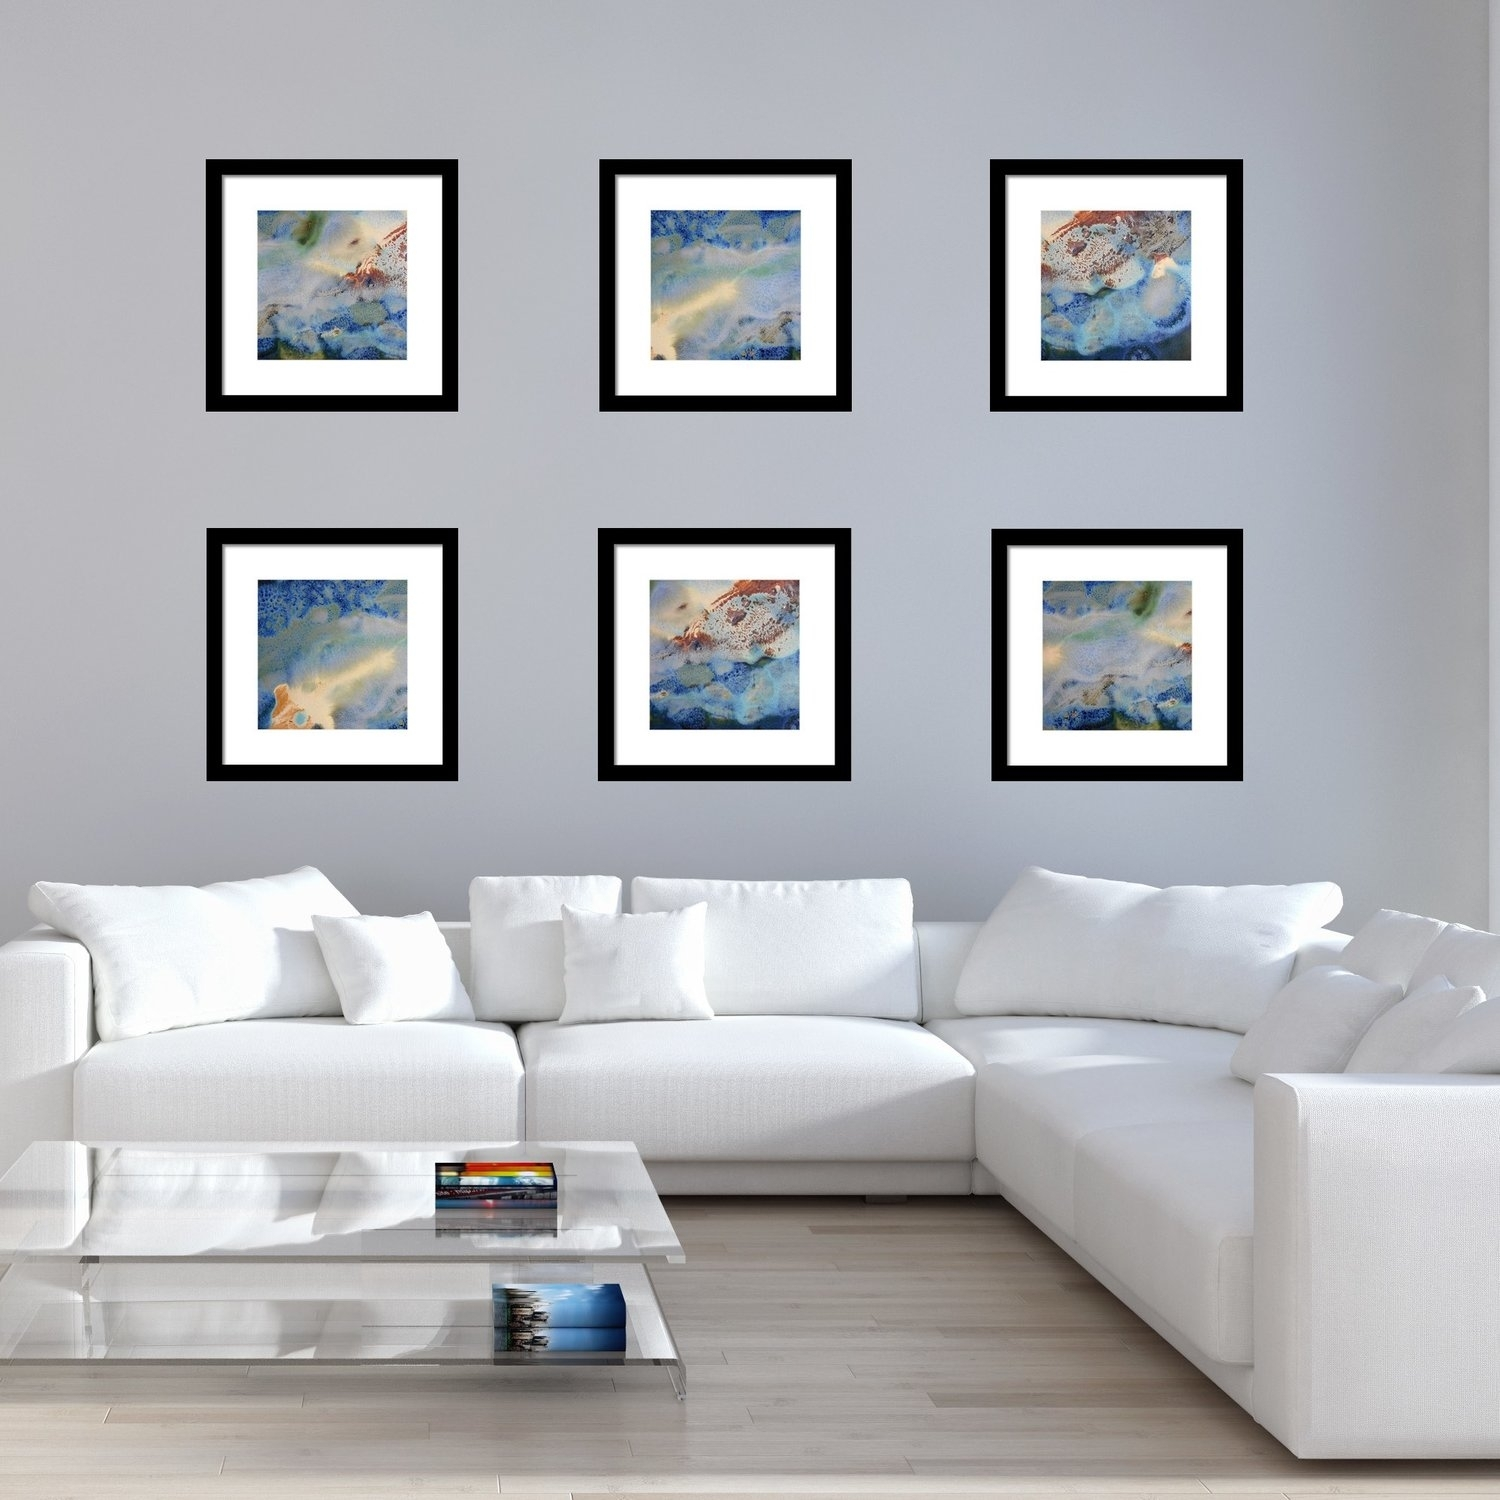 Set Of 6 Abstract Framed Prints – Square #17, 18 & 19   White Intended For Most Popular Neutral Abstract Wall Art (View 15 of 20)